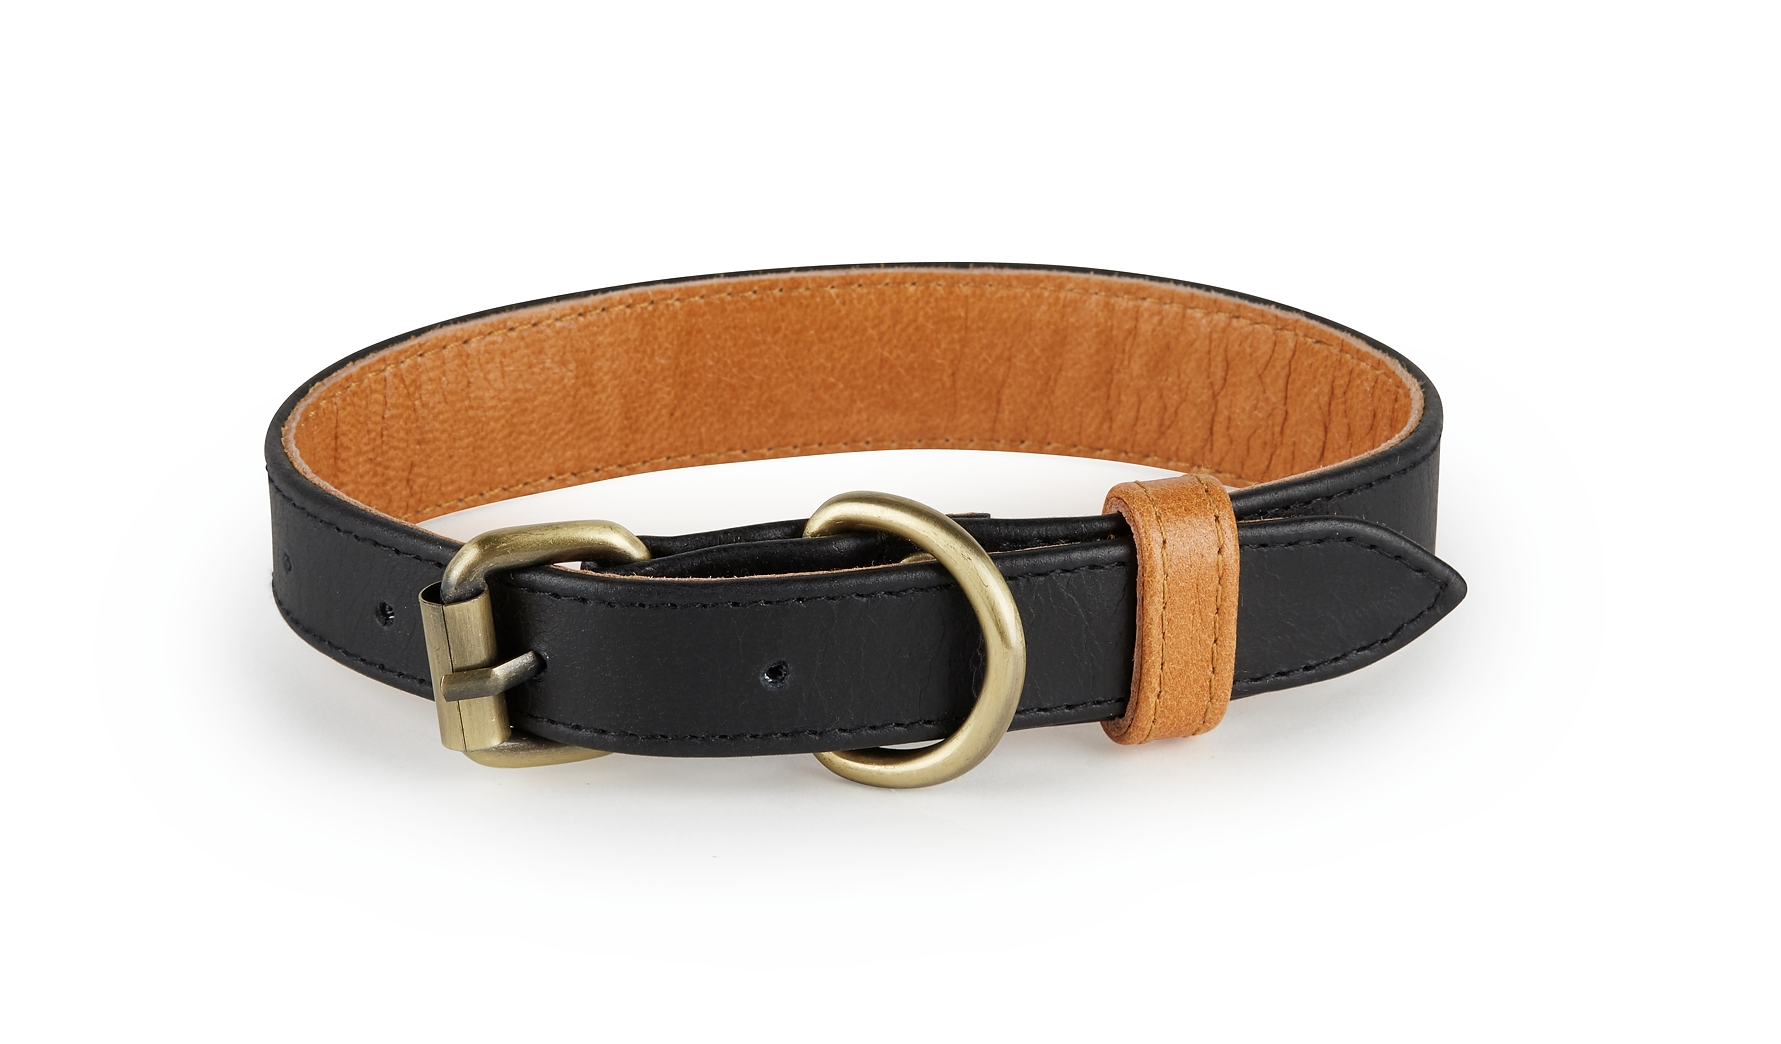 Hatteras - Black and Tan Leather Dog Collar